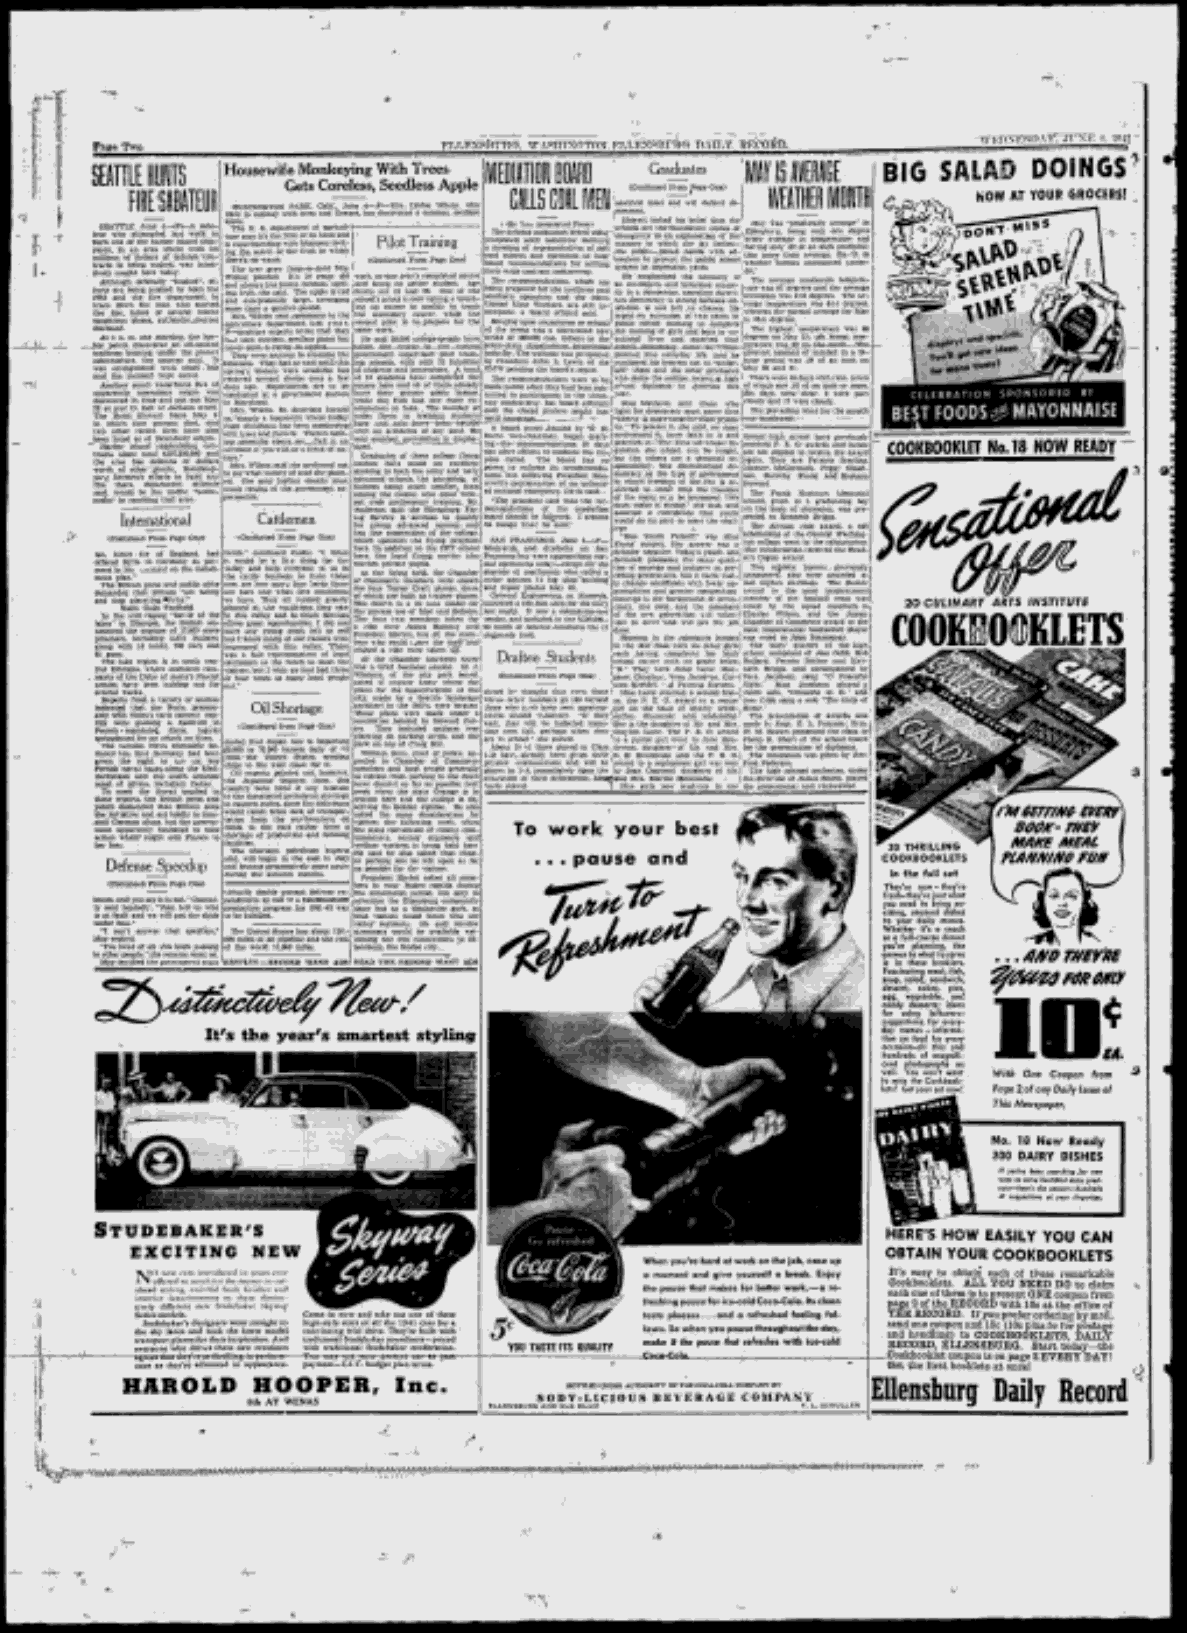 Ellensburg Daily Record - Google News Archive Search